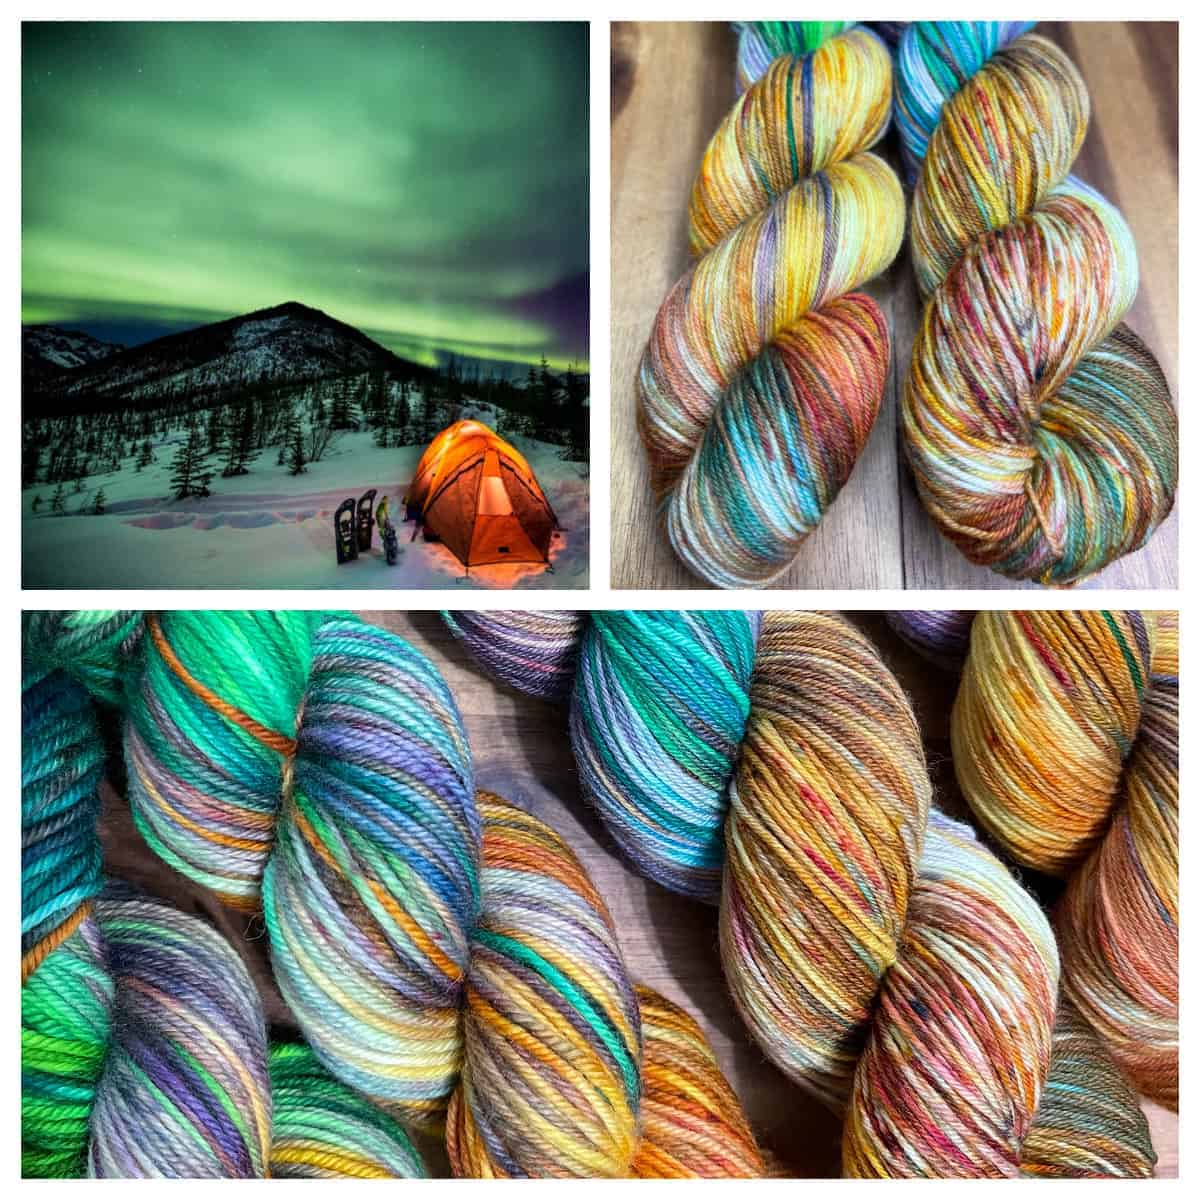 A collage of a tend under a green sky and green, gold, red and blue yarn.